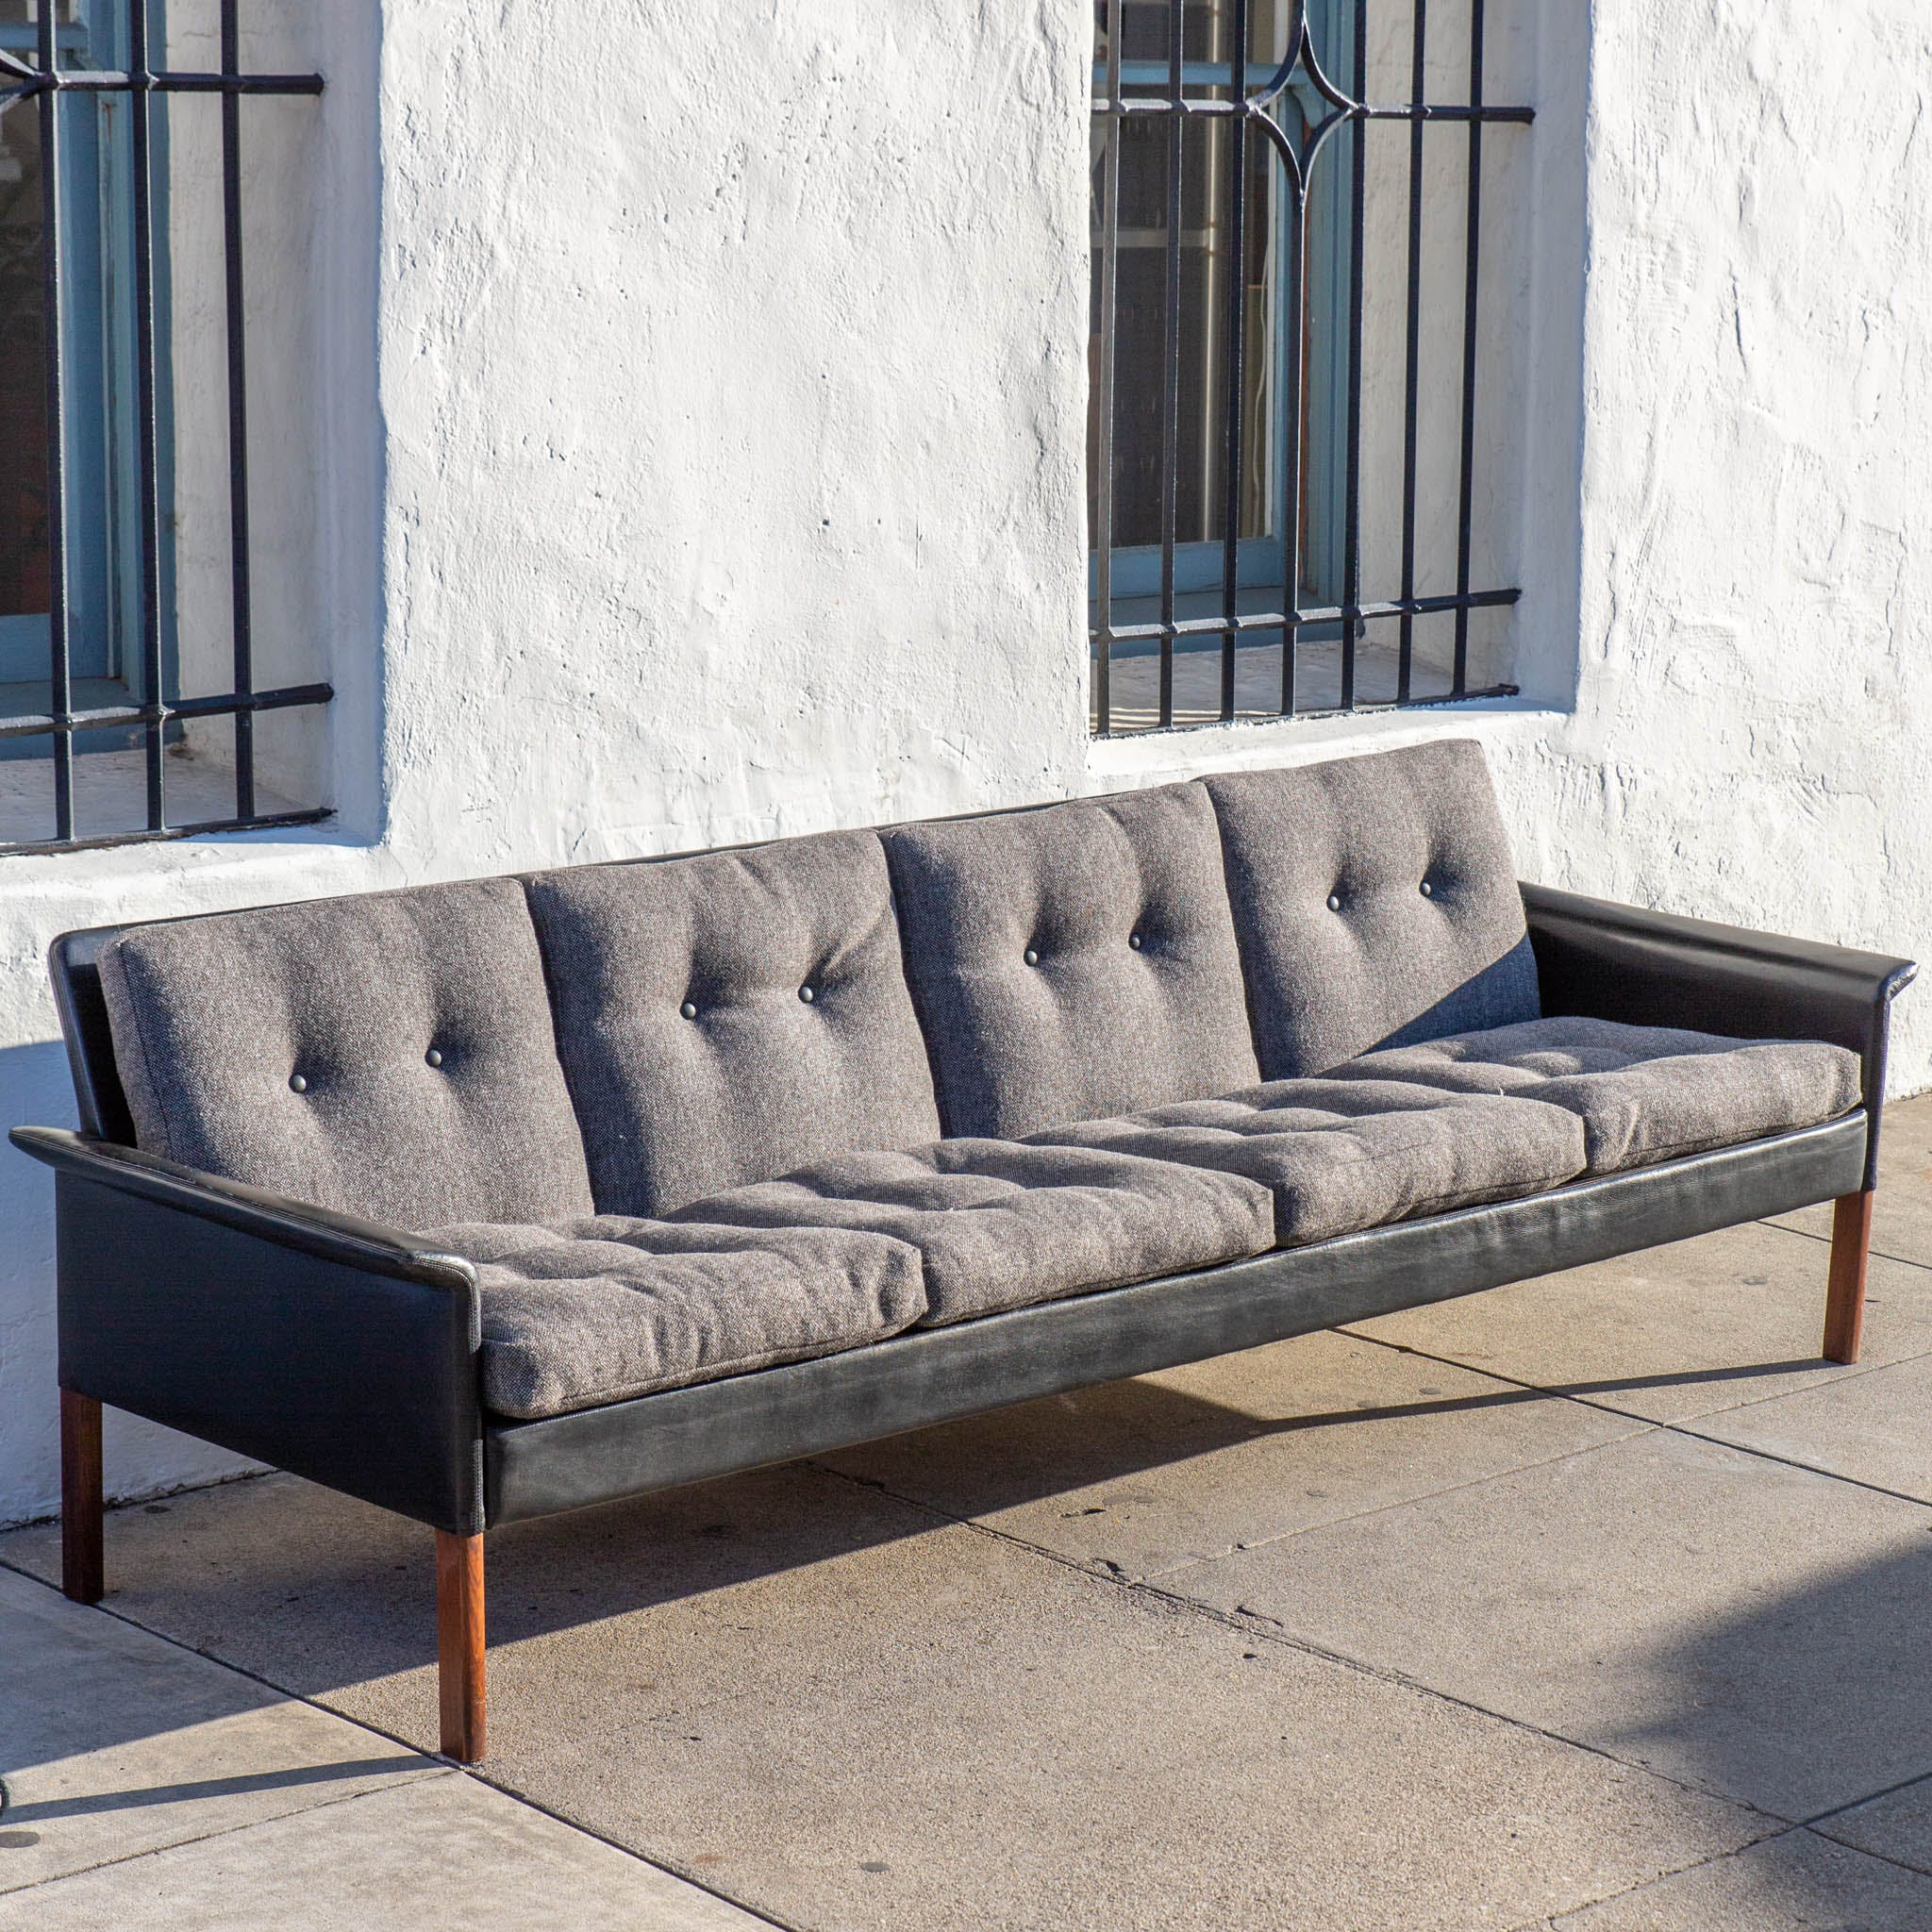 Hans Olsen Leather and Rosewood 4 Seat Sofa - The Blue Door